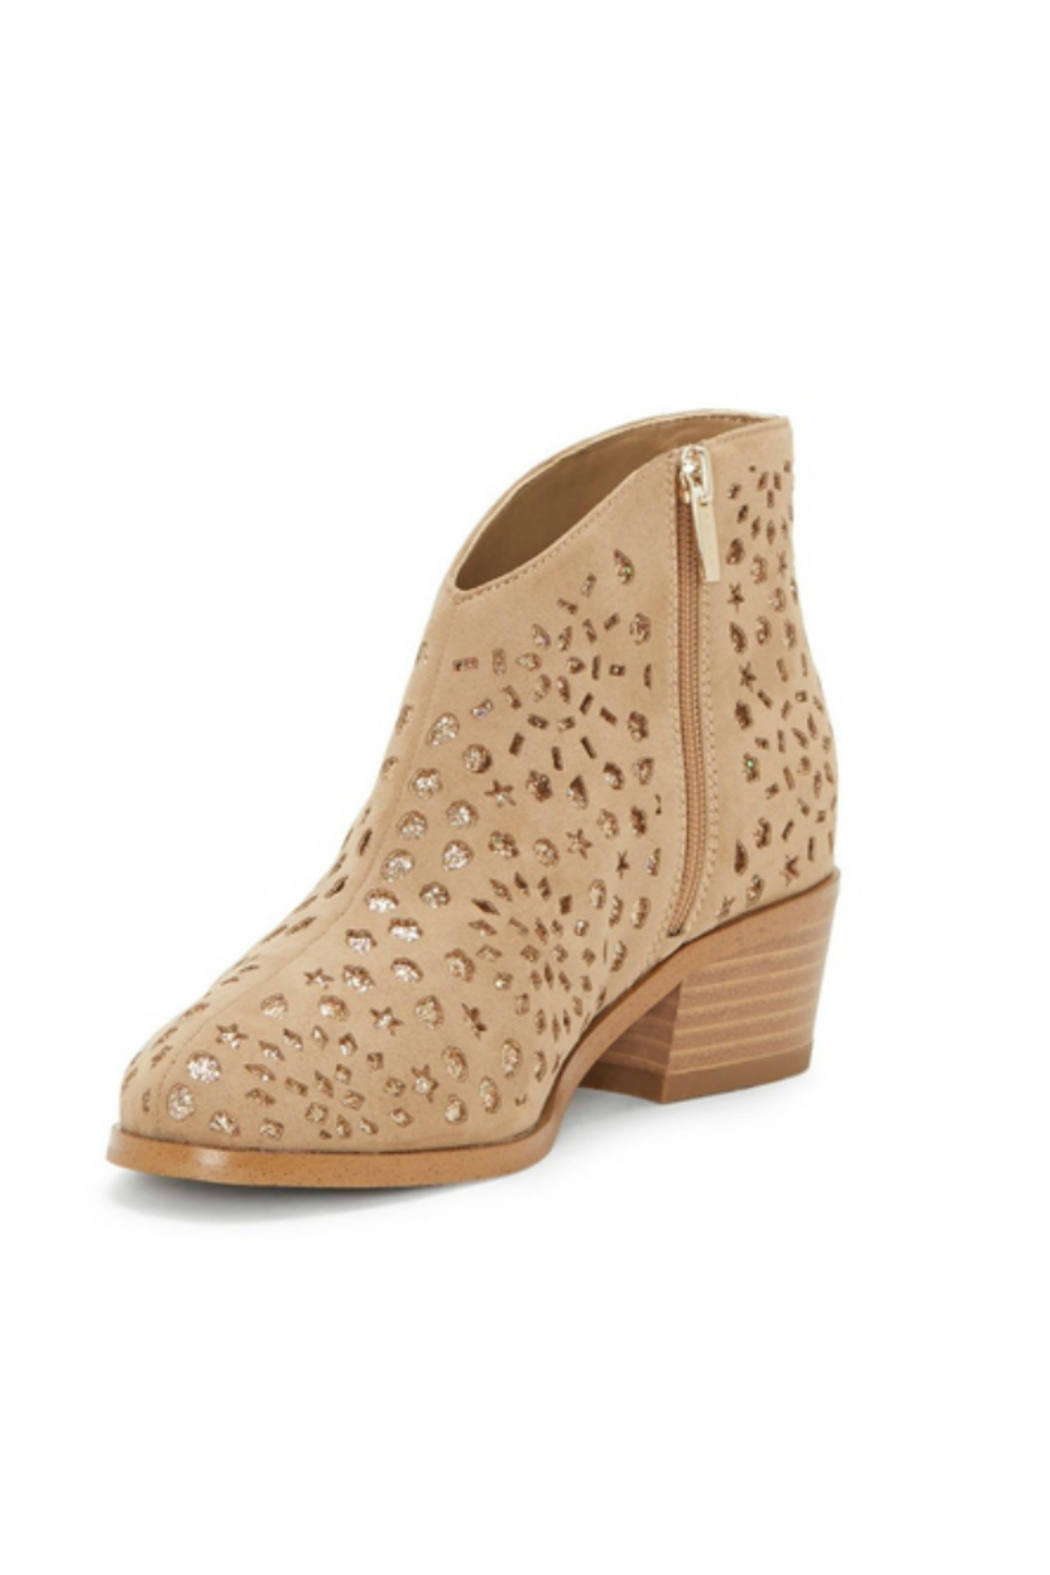 Vince Camuto CG-PHILAPIA - Front Full Image